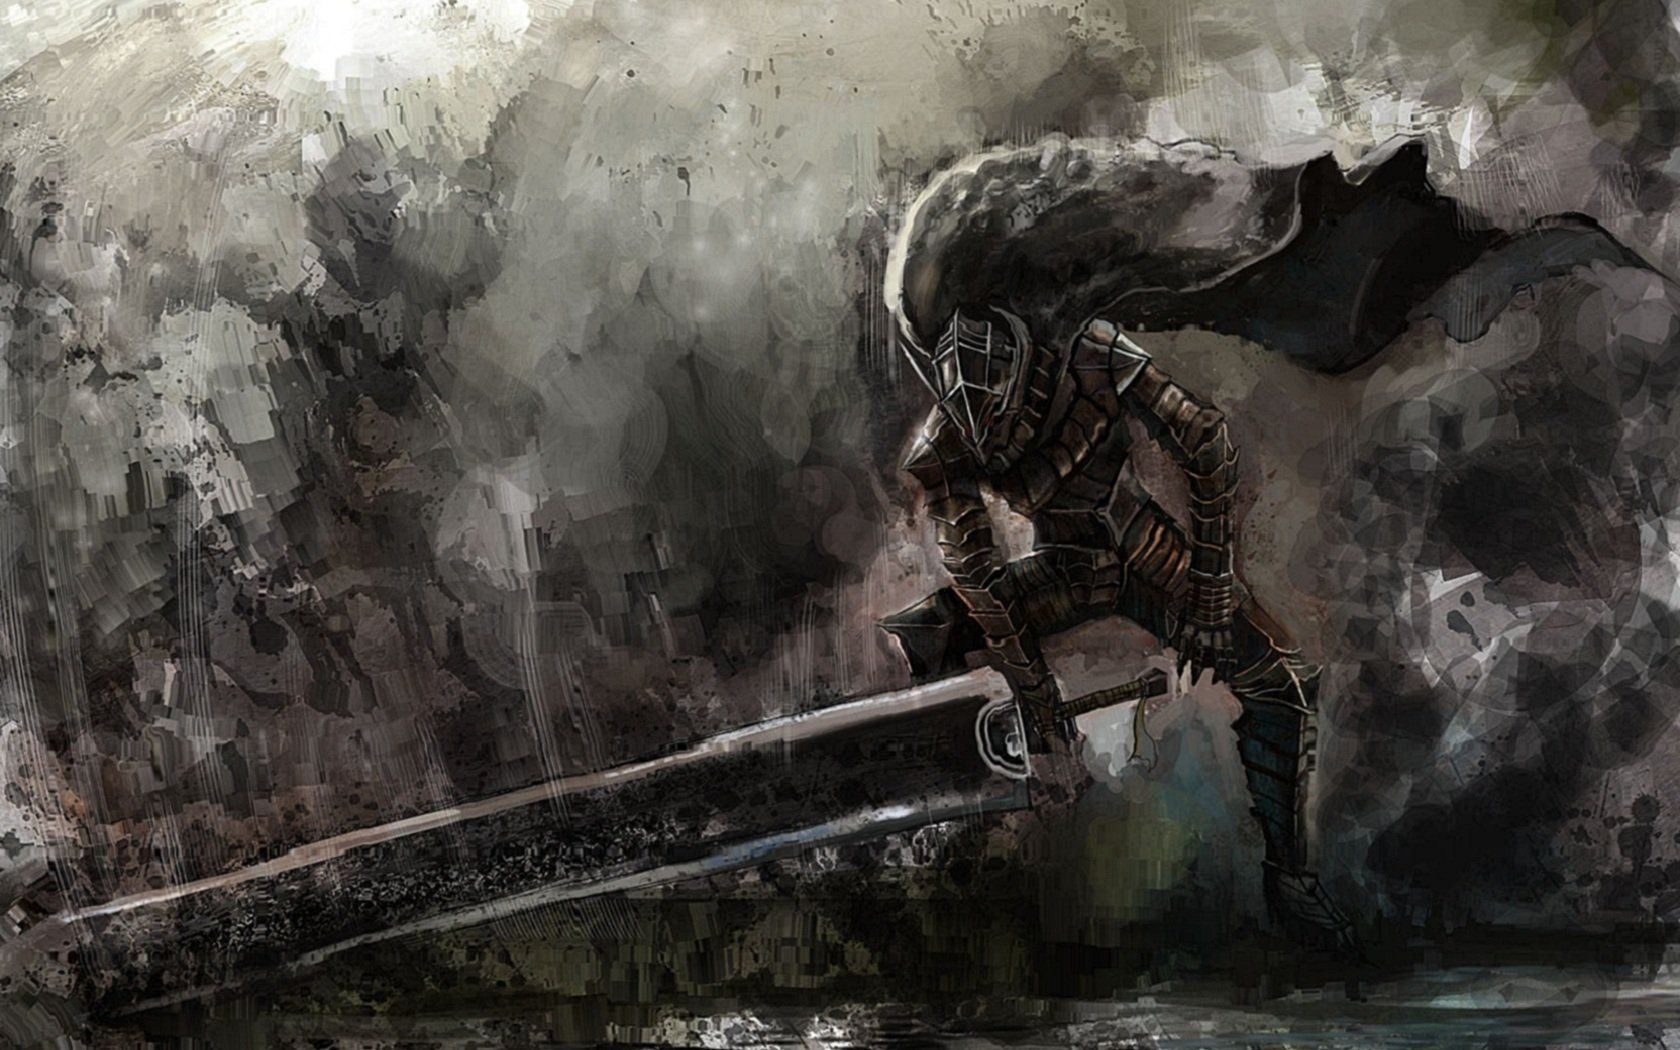 Anime Berserk Wallpaper Berserk, Art, Poster prints